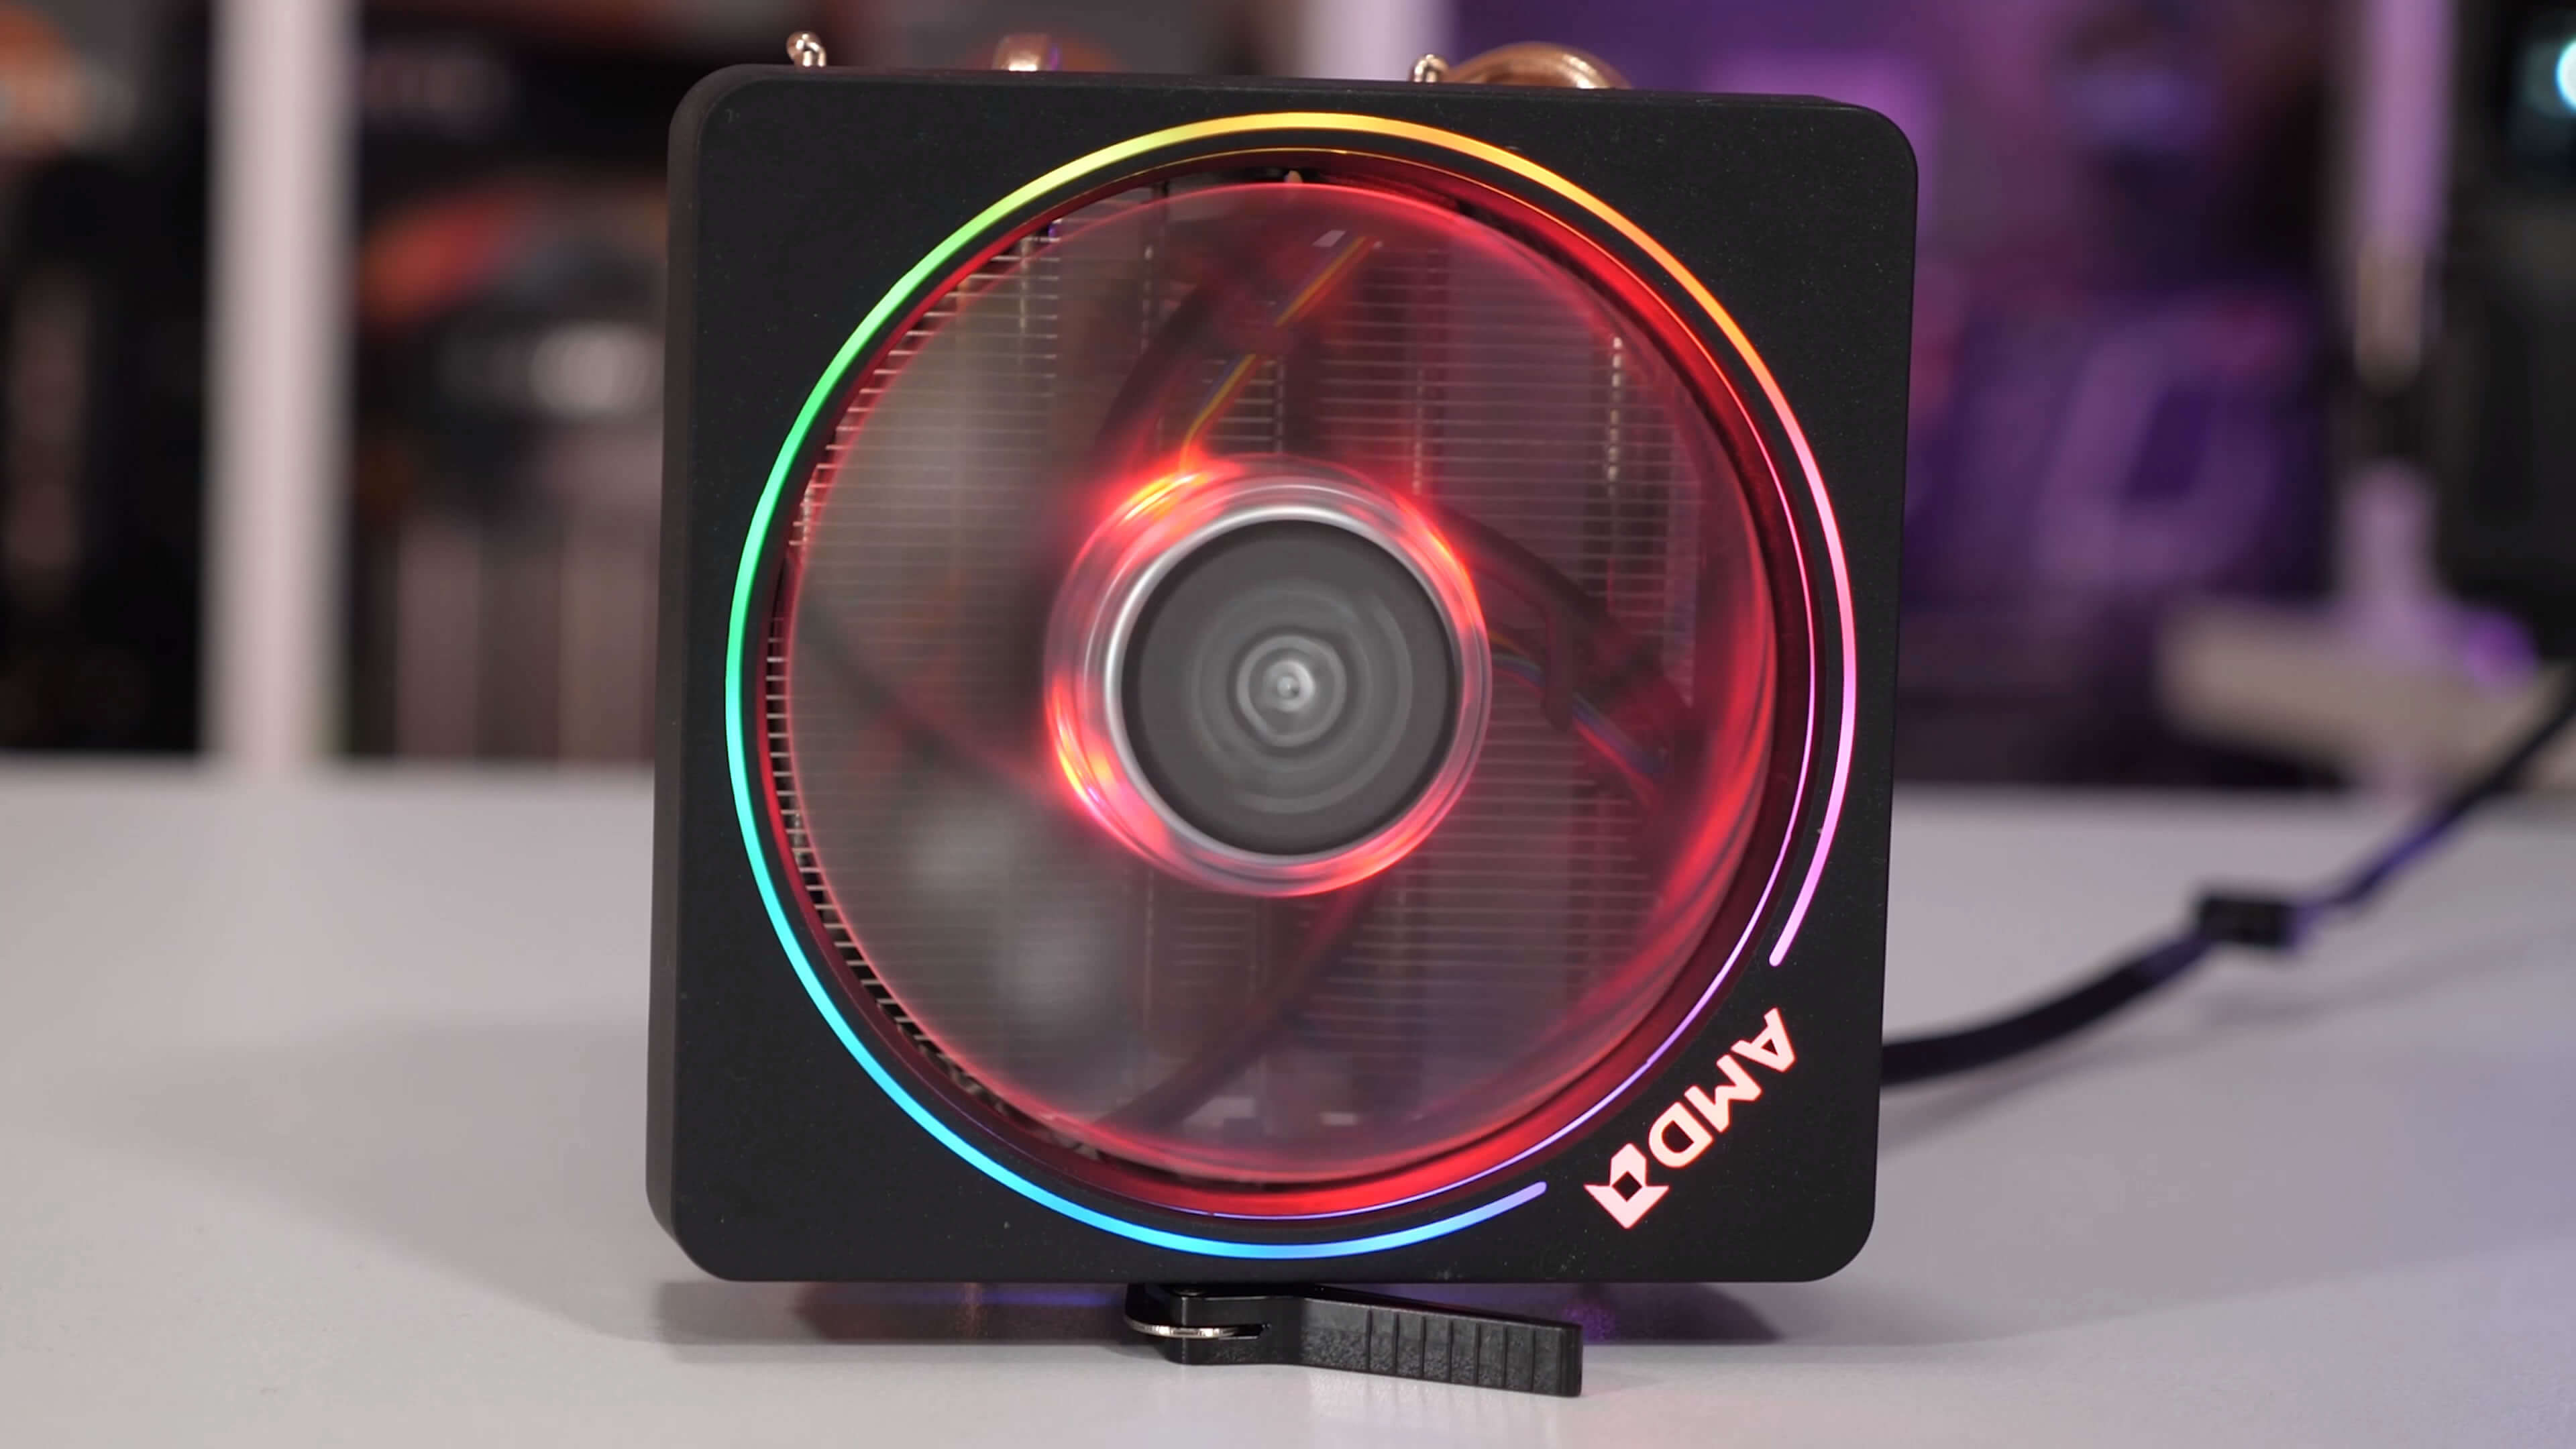 Ryzen 9 3900X: Wraith Prism RGB Stock Cooler vs  360mm AIO